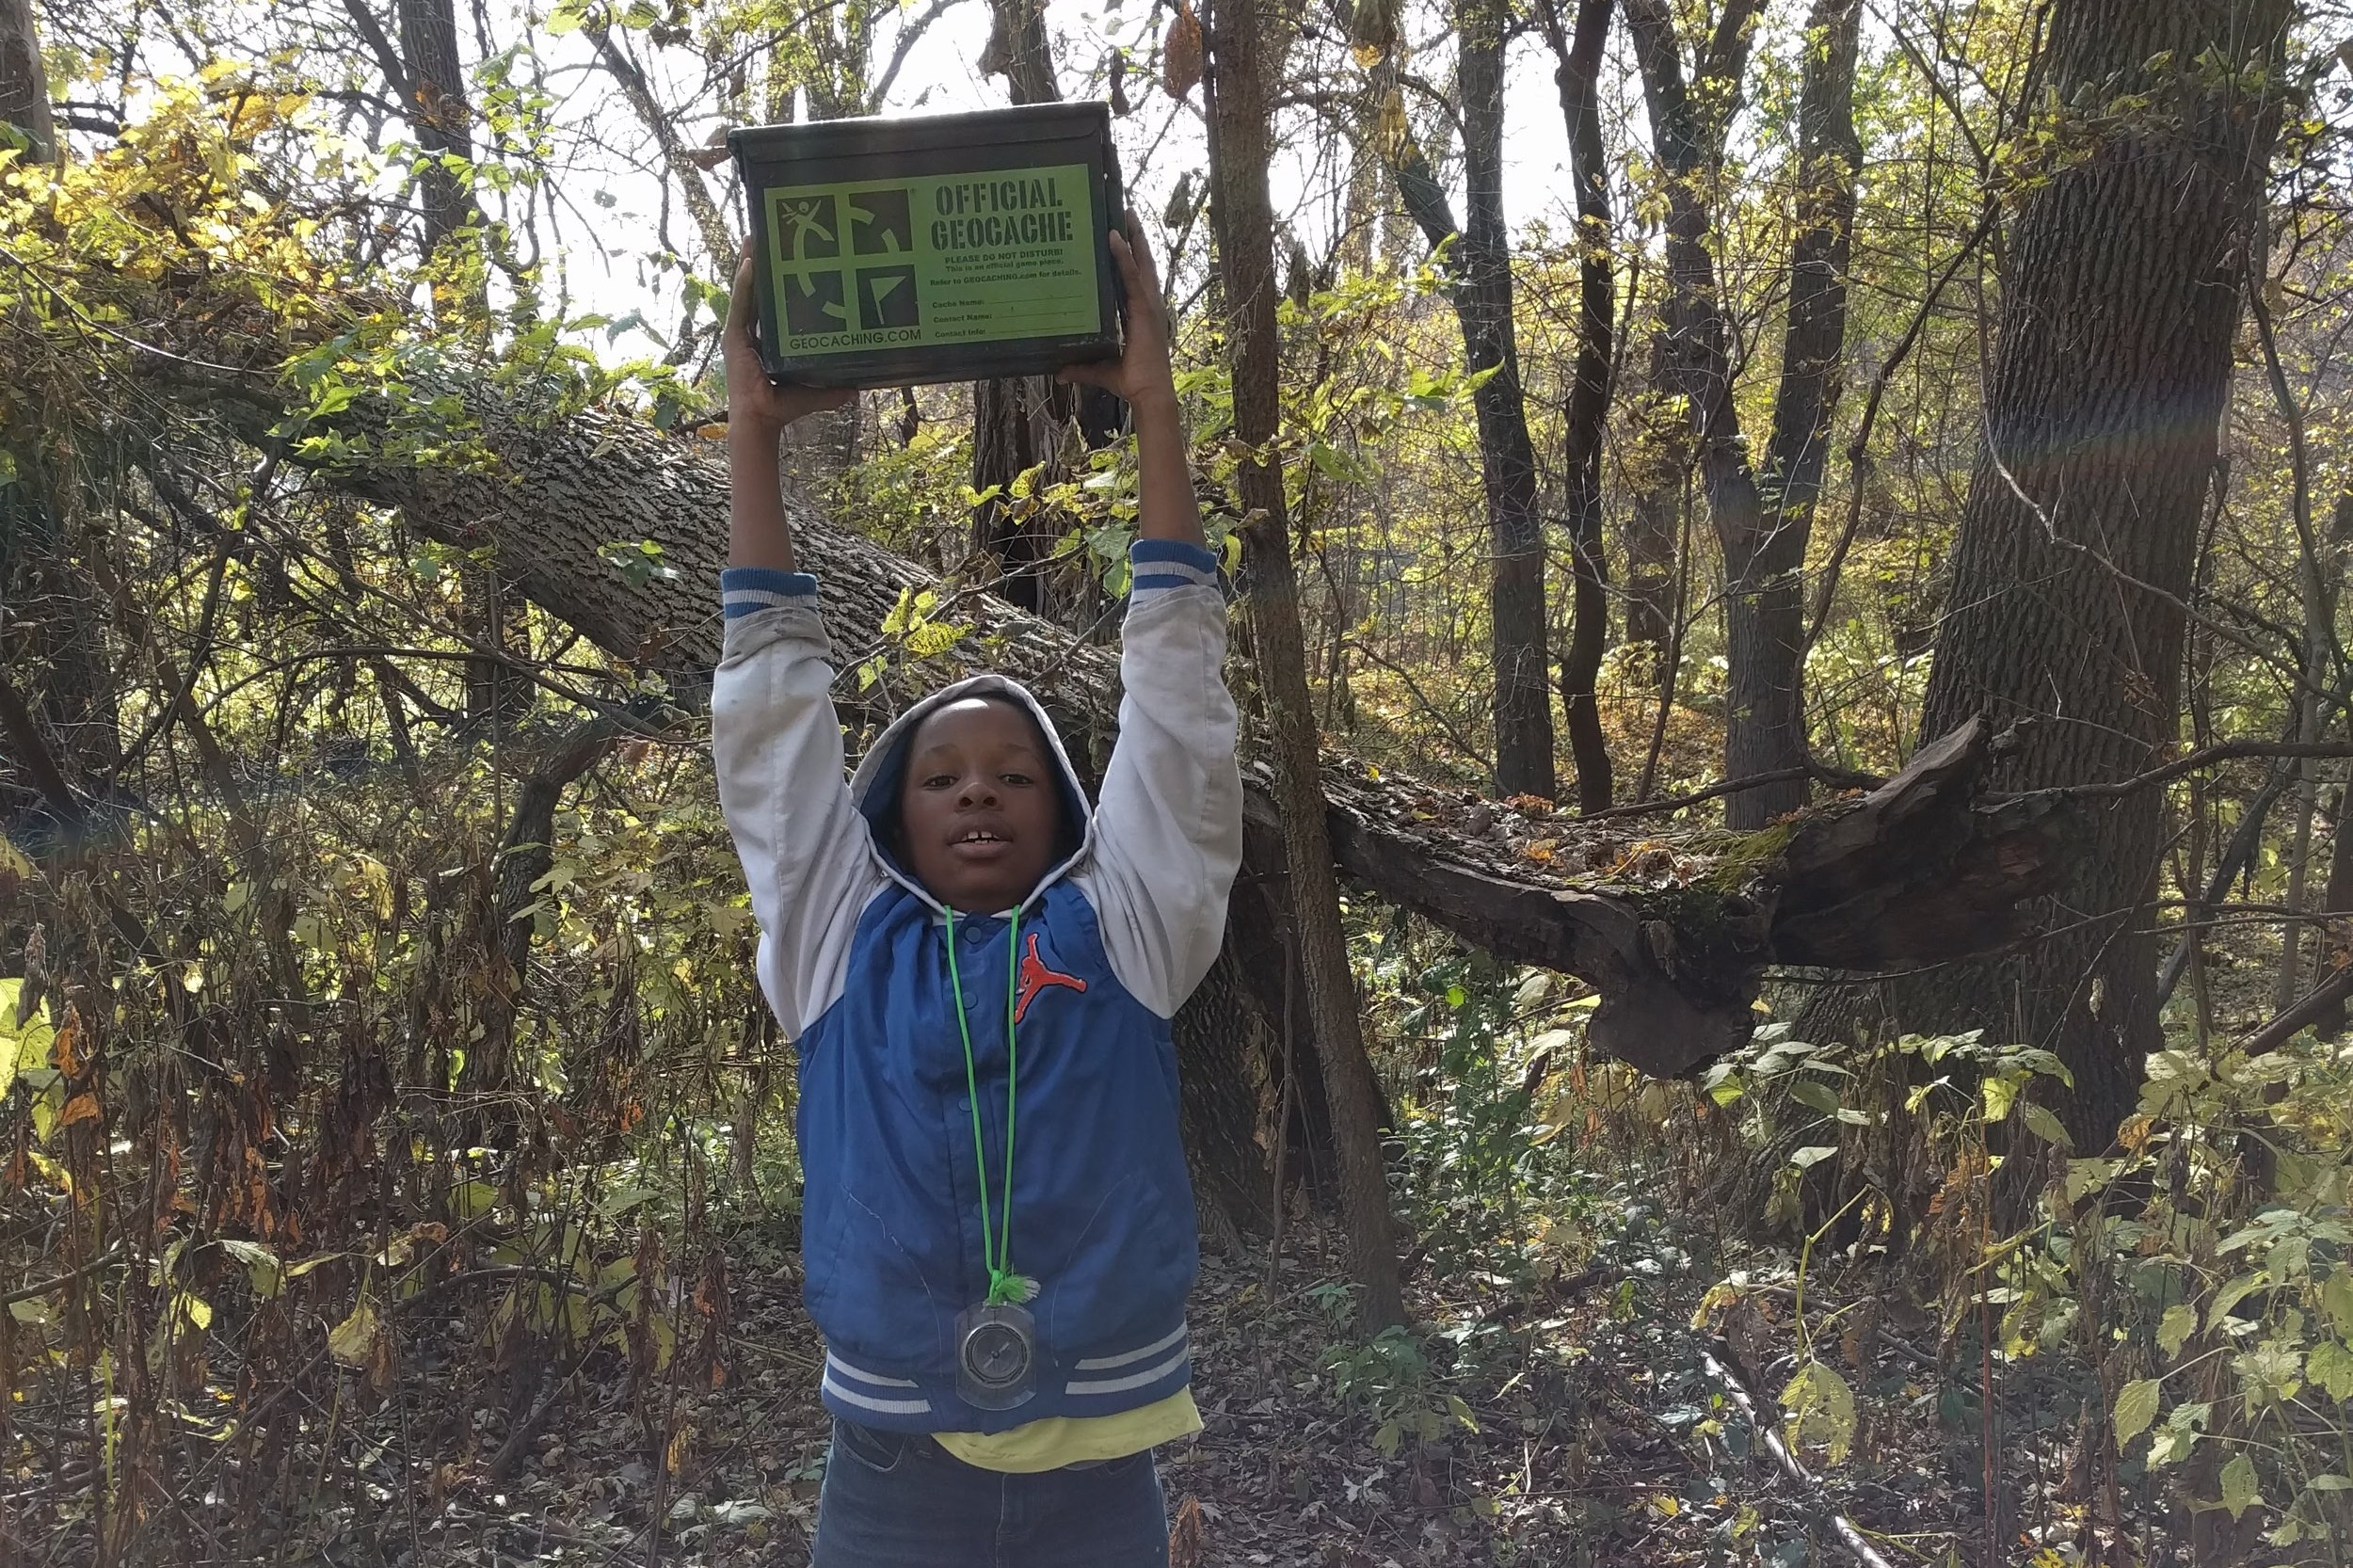 Orienteering Station - Volunteers will teach students how to use a compass, read the guided hike directions to the group, and facilitate navigation to predetermined locations in the park.